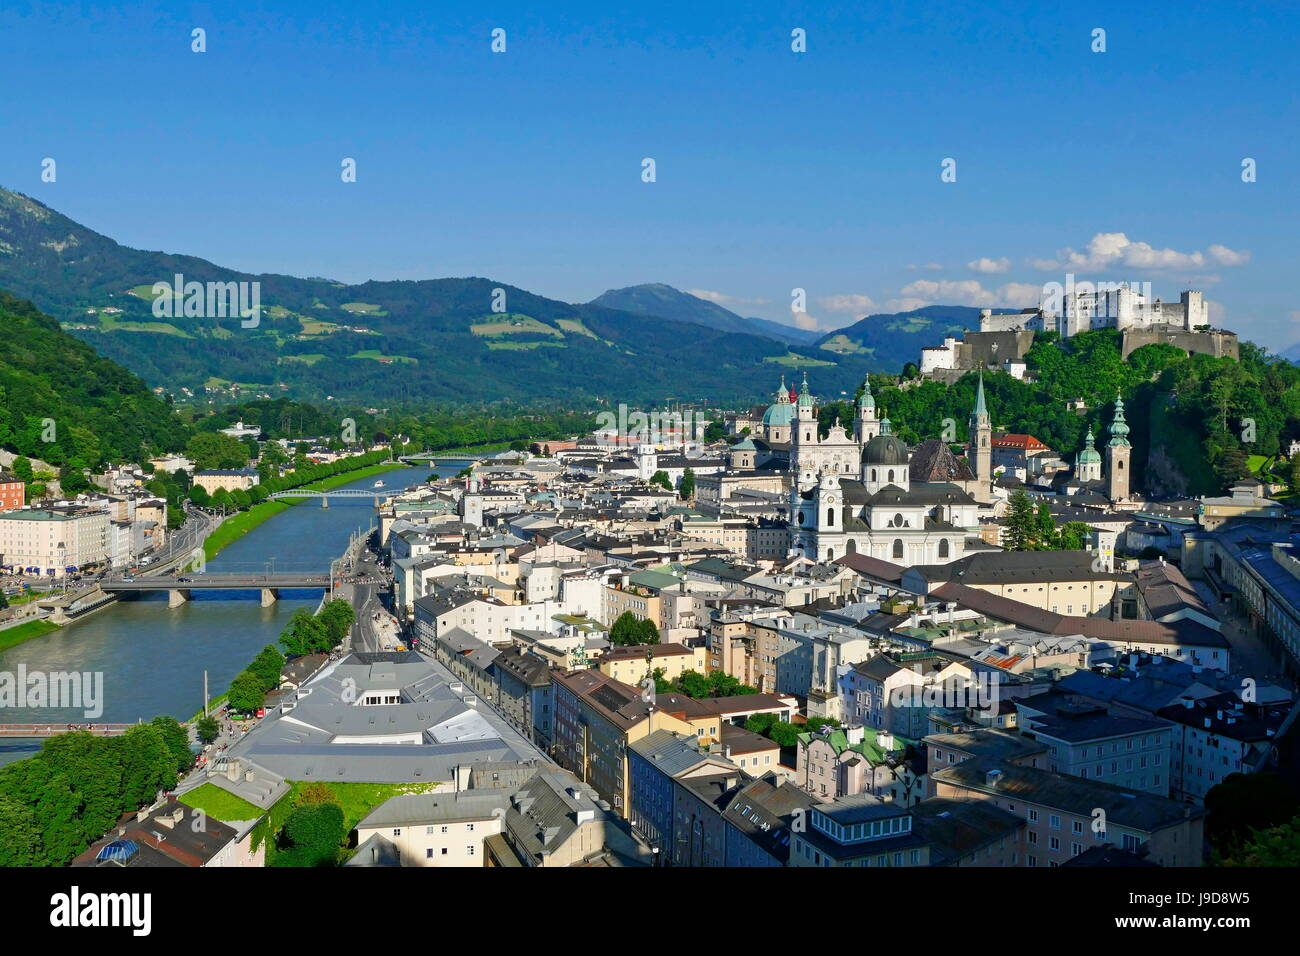 View from Moenchsberg Hill across Salzach River with Cathedral, Collegiate Church and Fortress Hohensalzburg, Salzburg, - Stock Image